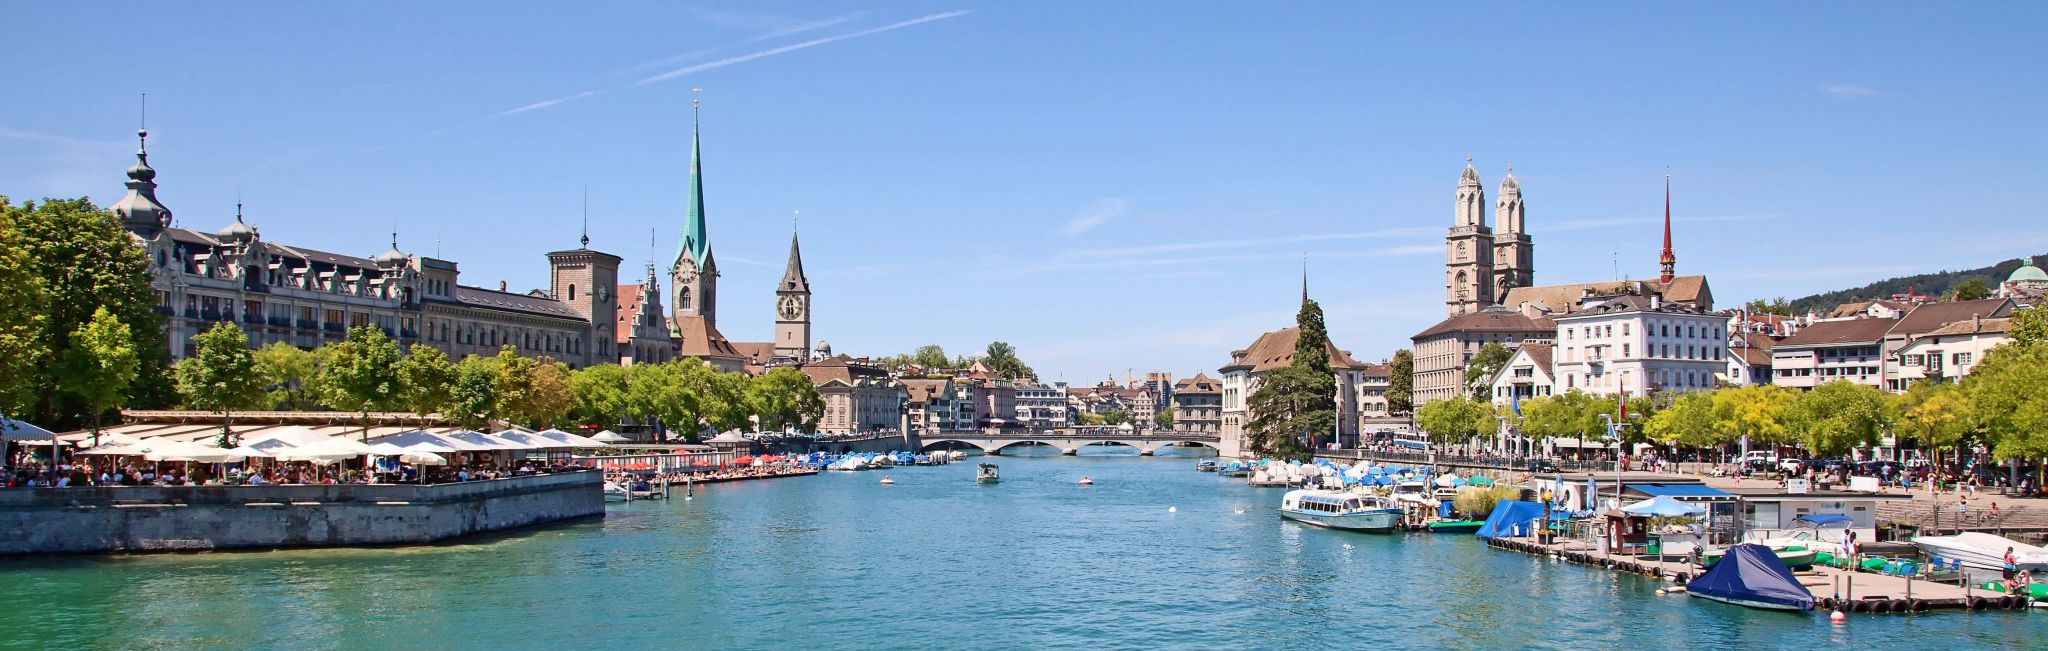 Switzerland Tours Vacations Travel Packages - 11 cities to visit on your trip to switzerland